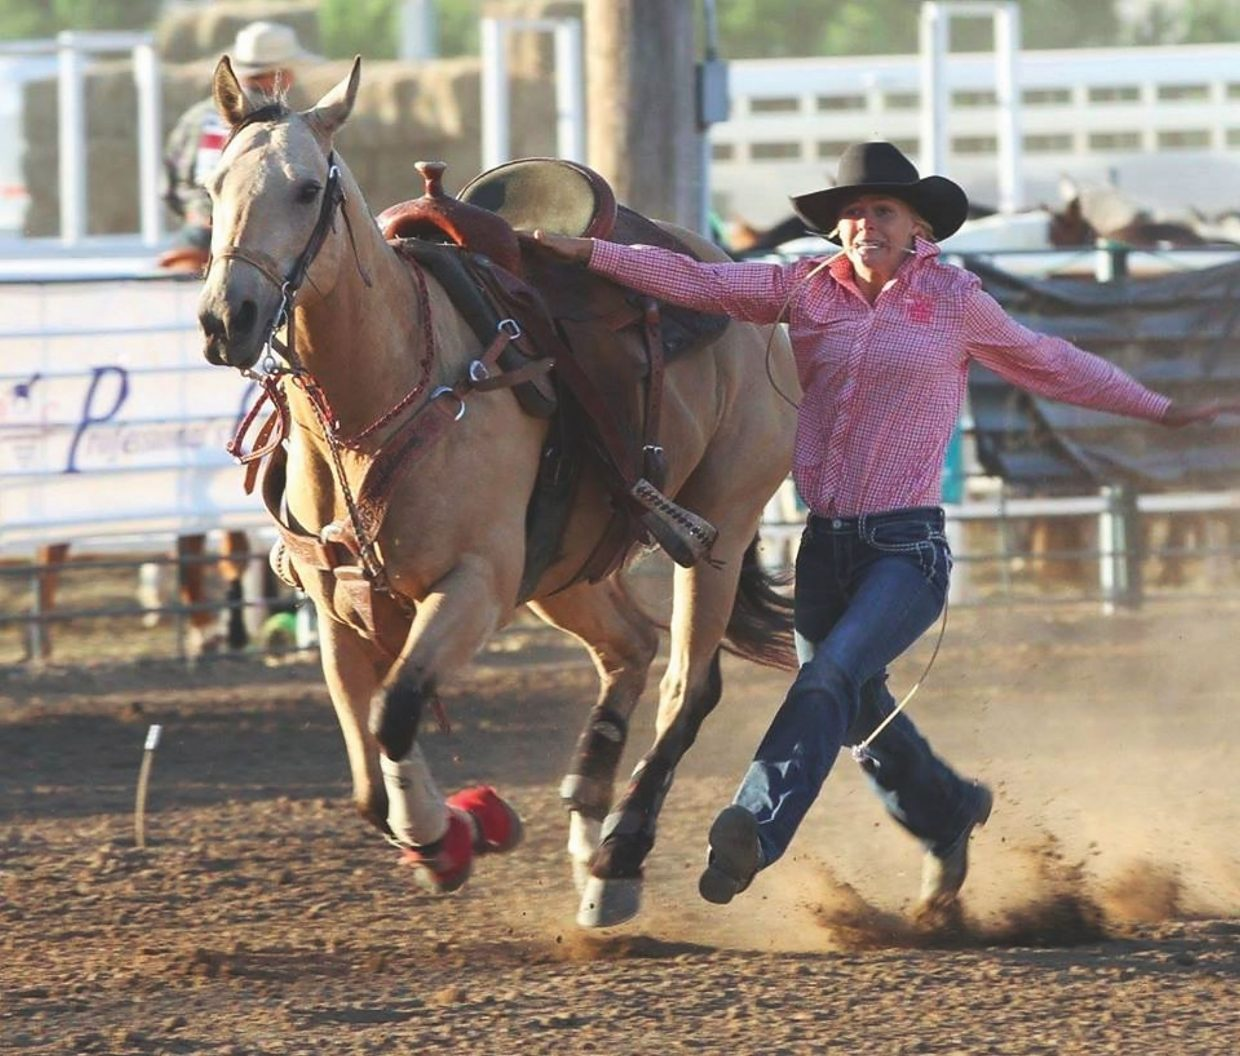 Emilee Pauley will represent South Dakota in goat tying at the National High School Finals in Gillette, Wyoming, July 16-22. Photo by Loretta Monnens